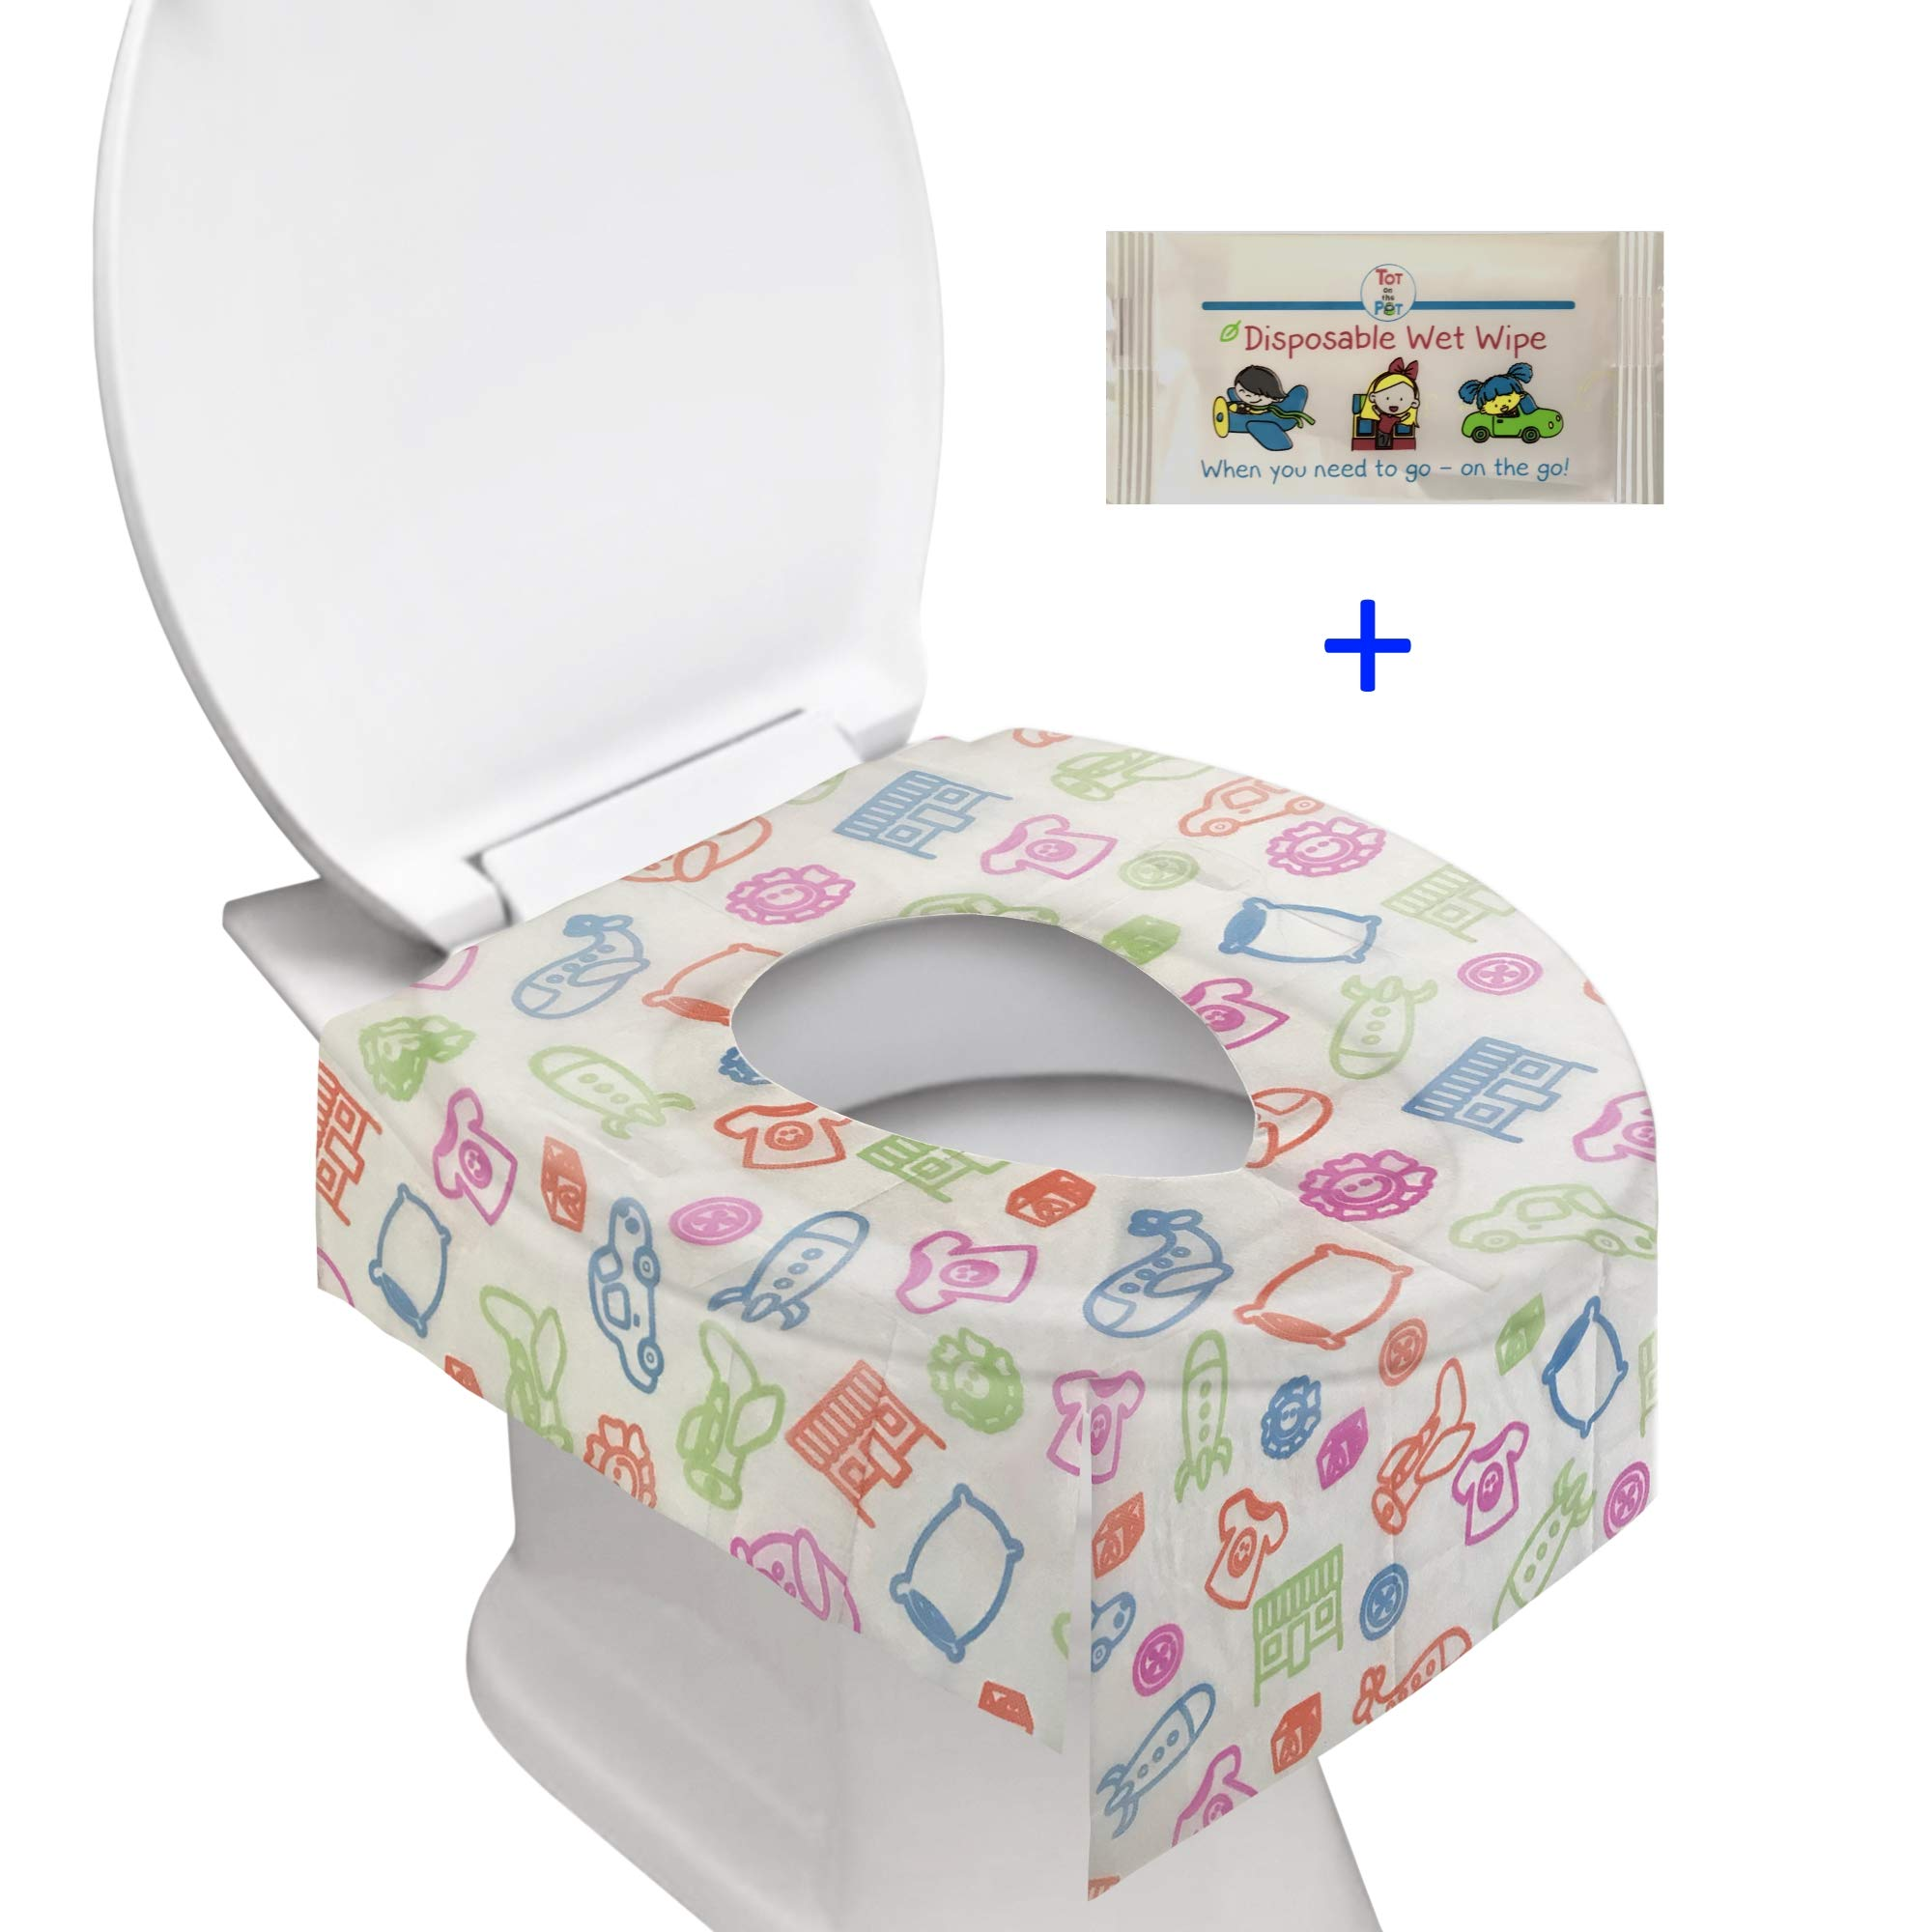 Toilet Cover + Baby Wipe: Individually Wrapped Disposable XL Potty Cover & All Natural Wet Wipe | Perfect Solution for Travel & When You're On The Go (20 Pack)